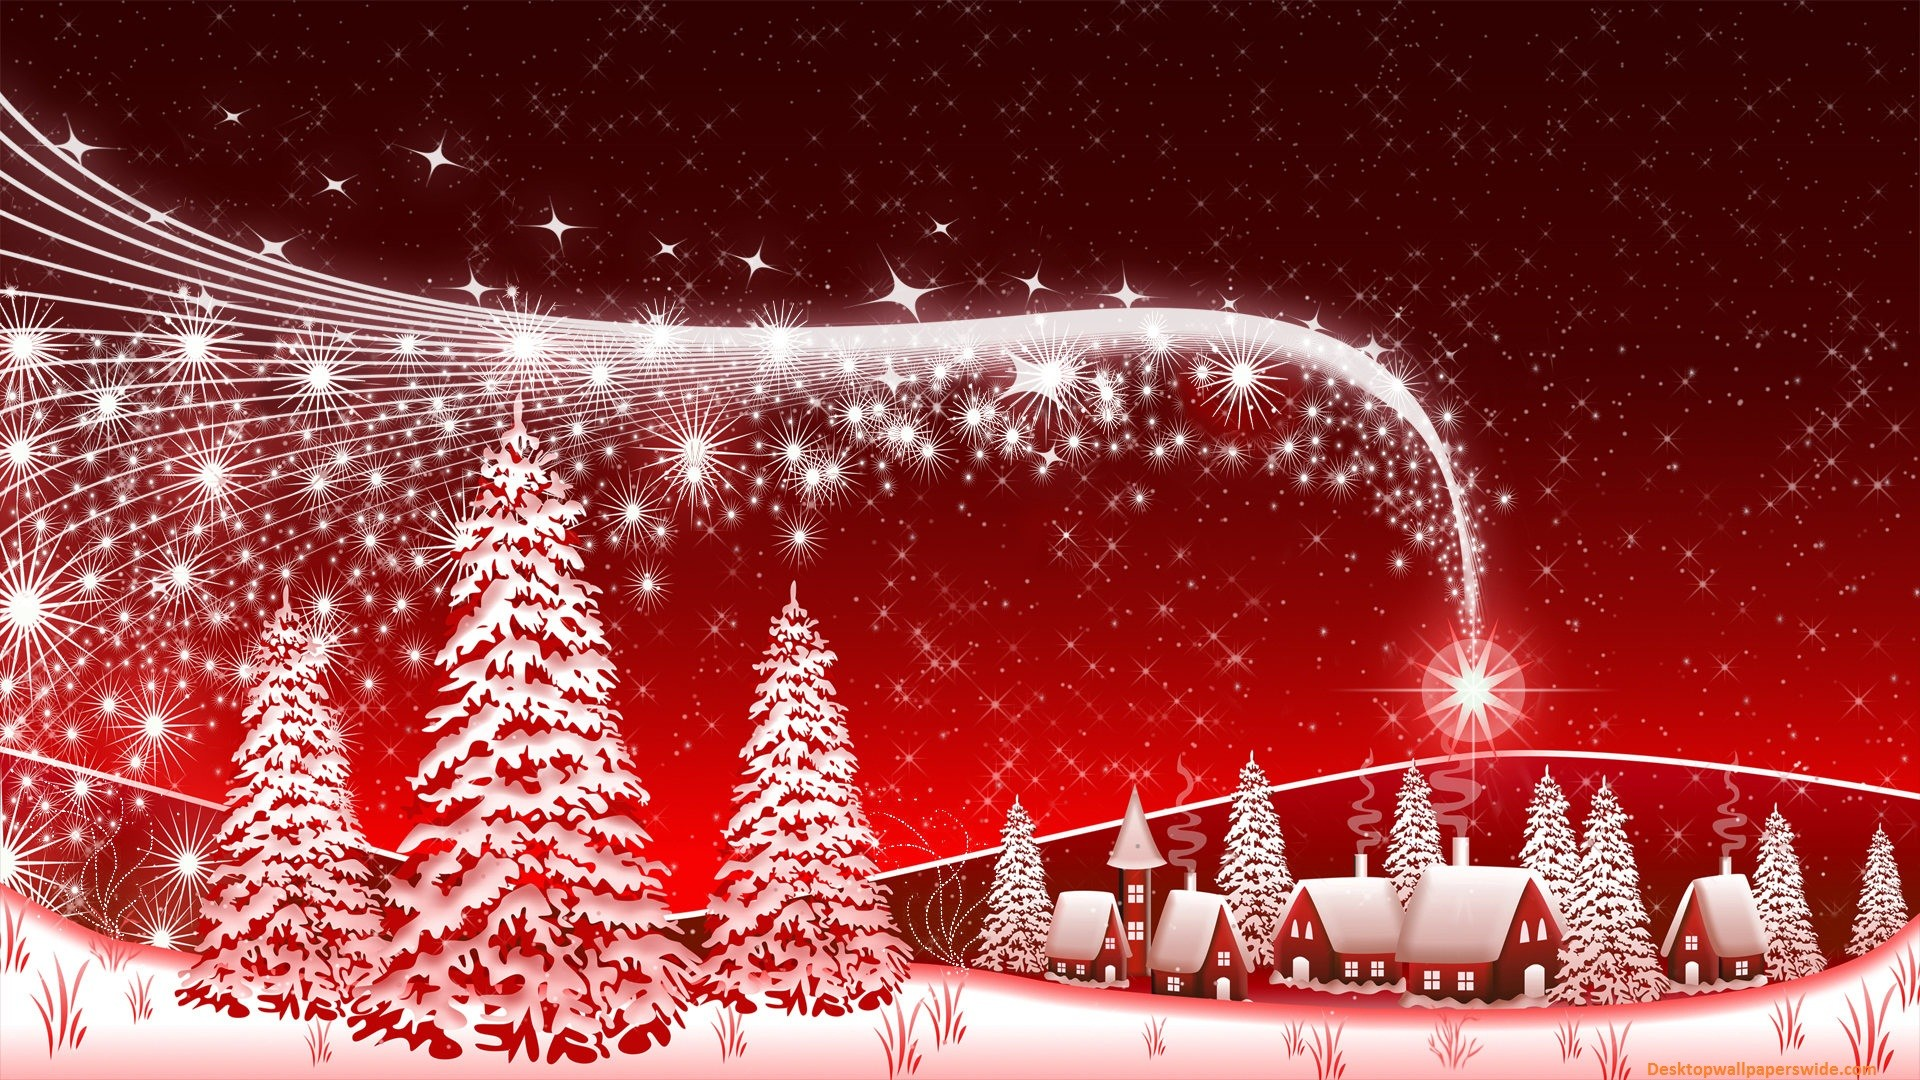 … Merry Christmas Wallpapers, Wallpapers of Merry Christmas HD Widescreen